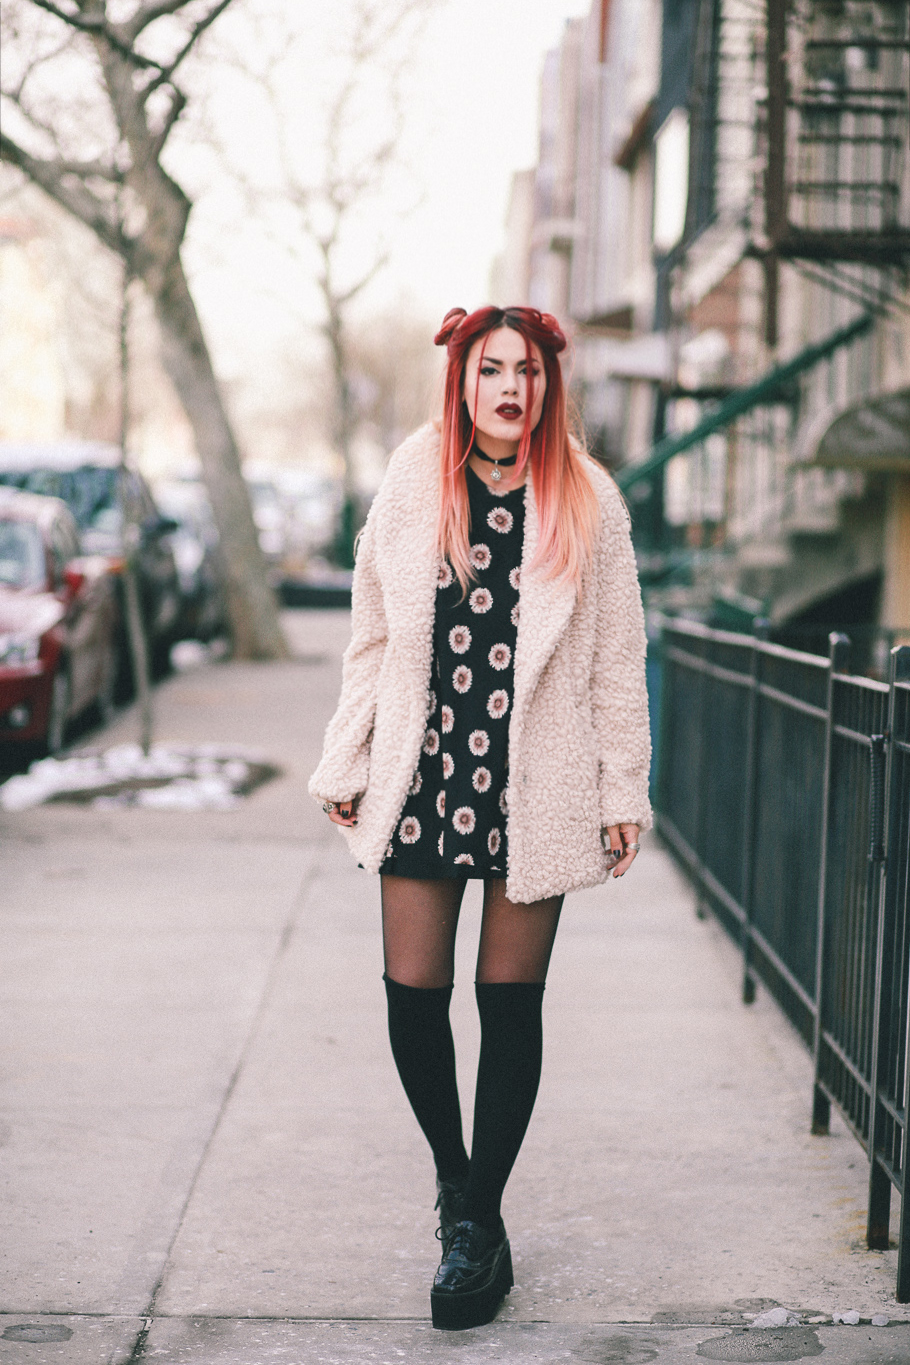 Le Happy wearing Willow & Clay coat and thigh high socks